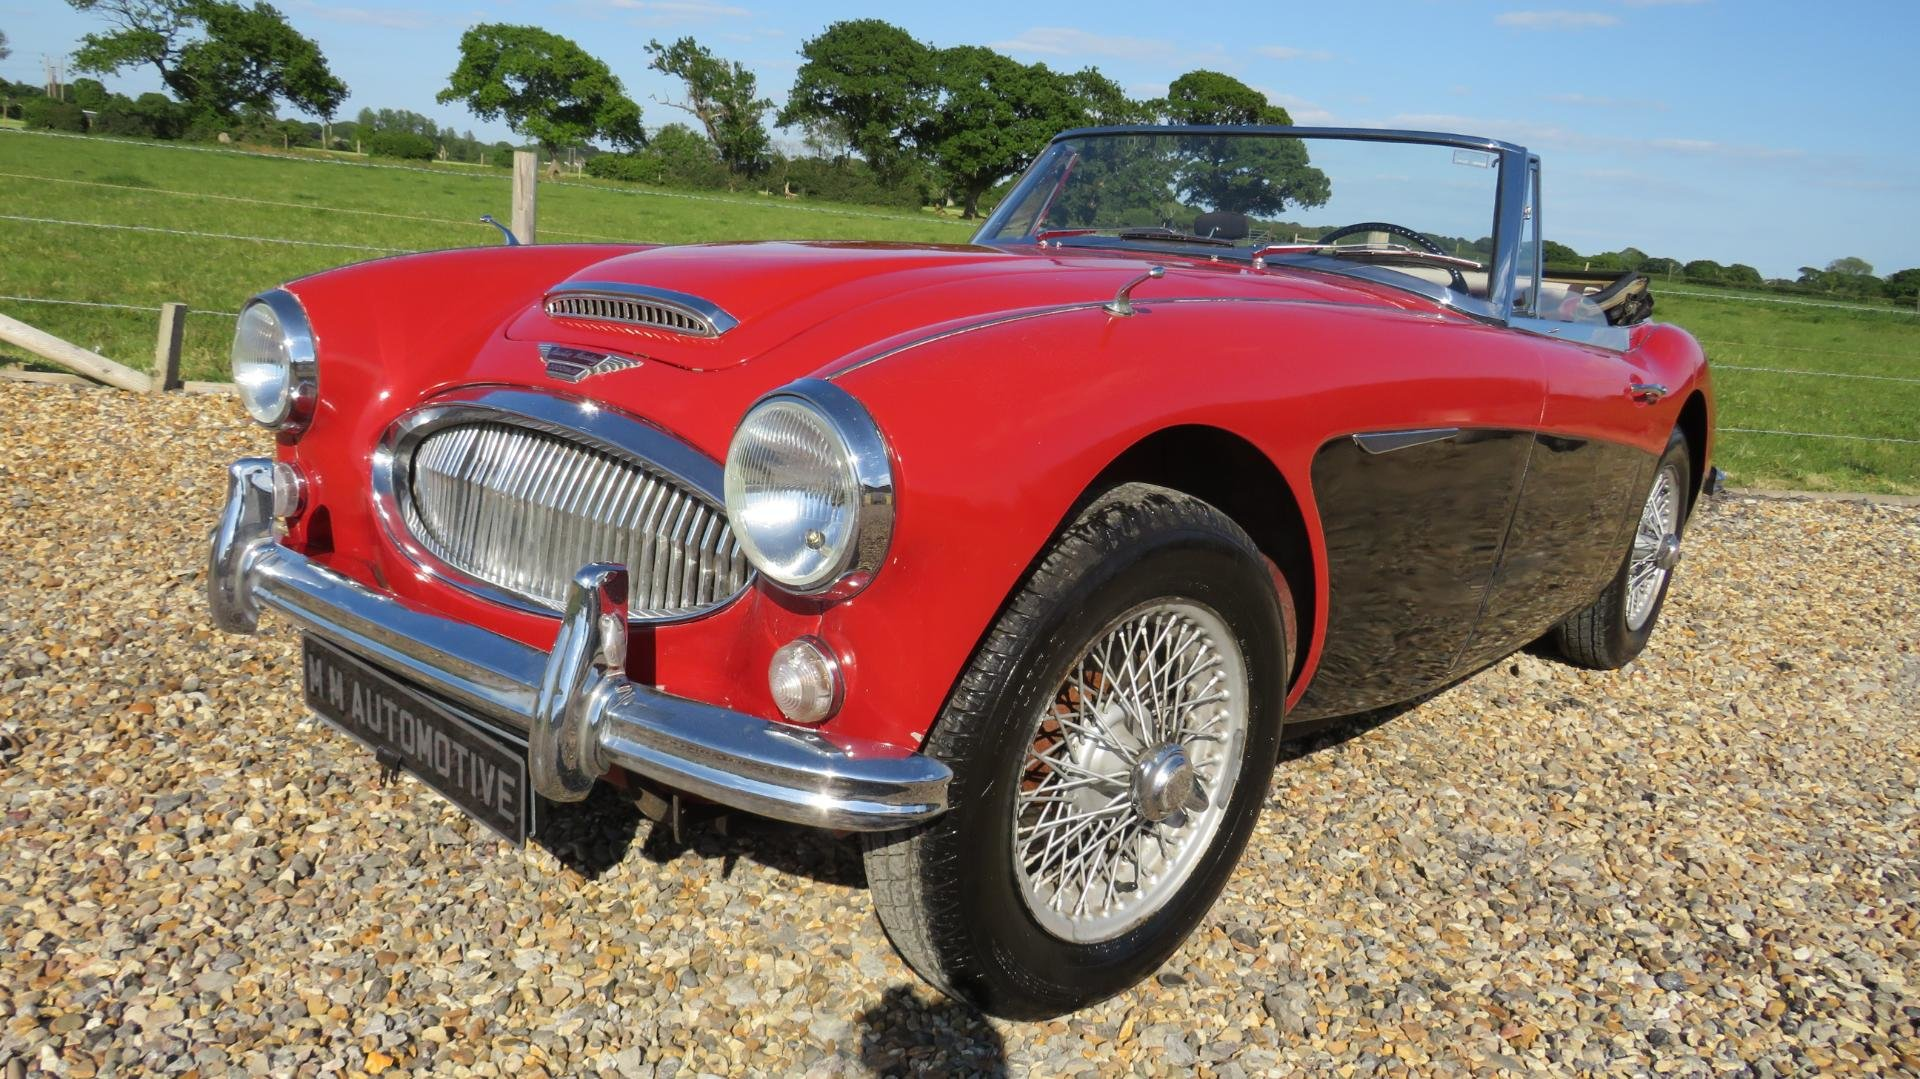 1964 Austin Healey 3000 MK 111 PHASE 2 BJ8 LHD For Sale (picture 1 of 1)